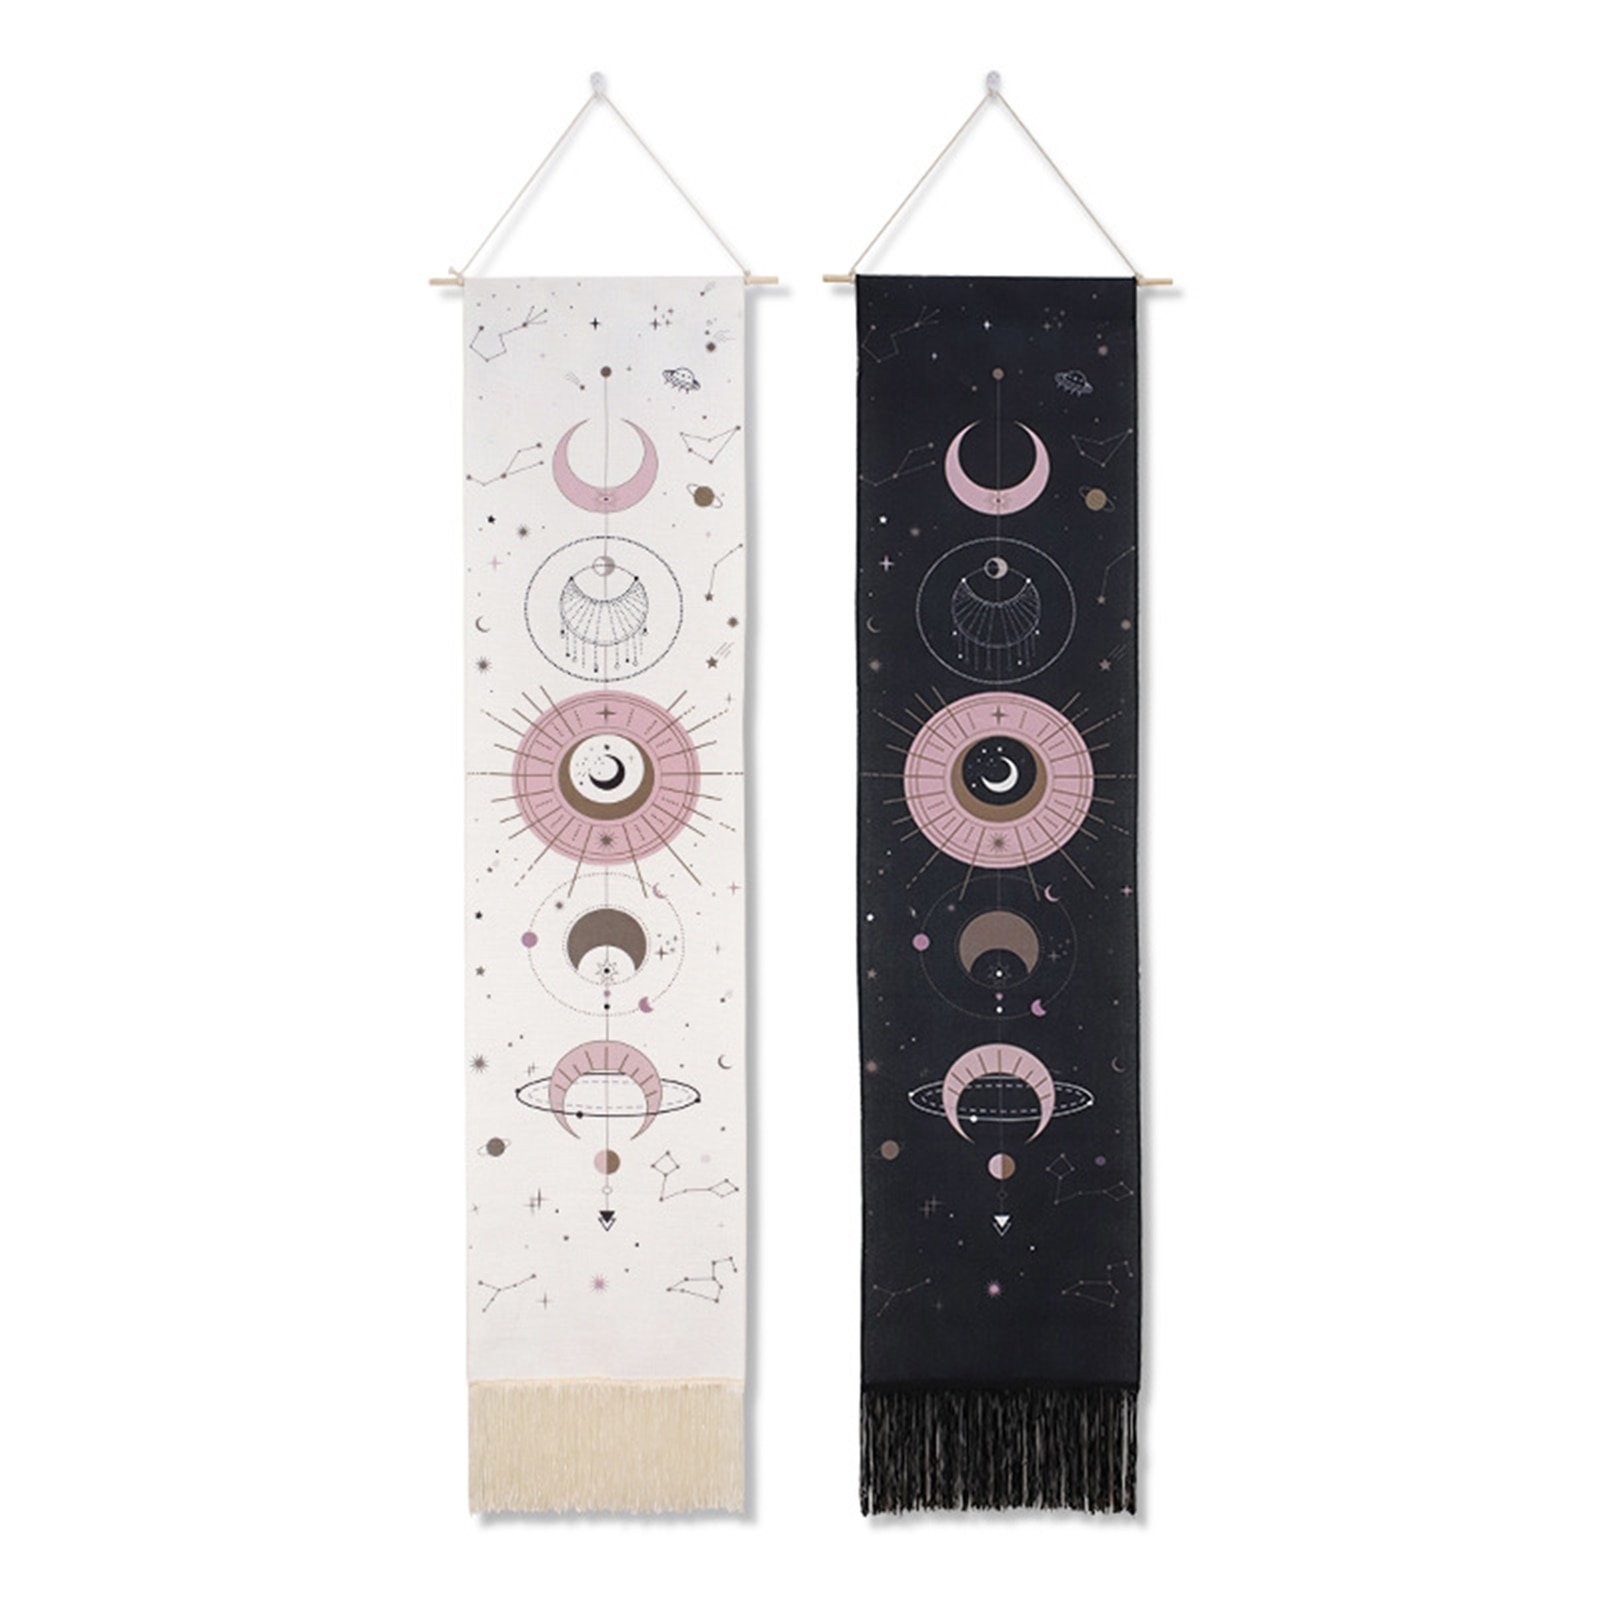 Moon Phase Tapestry Wall Hanging Boho Art Tapestries Bright Printing Pattern hand-made lace hanging wall decoration